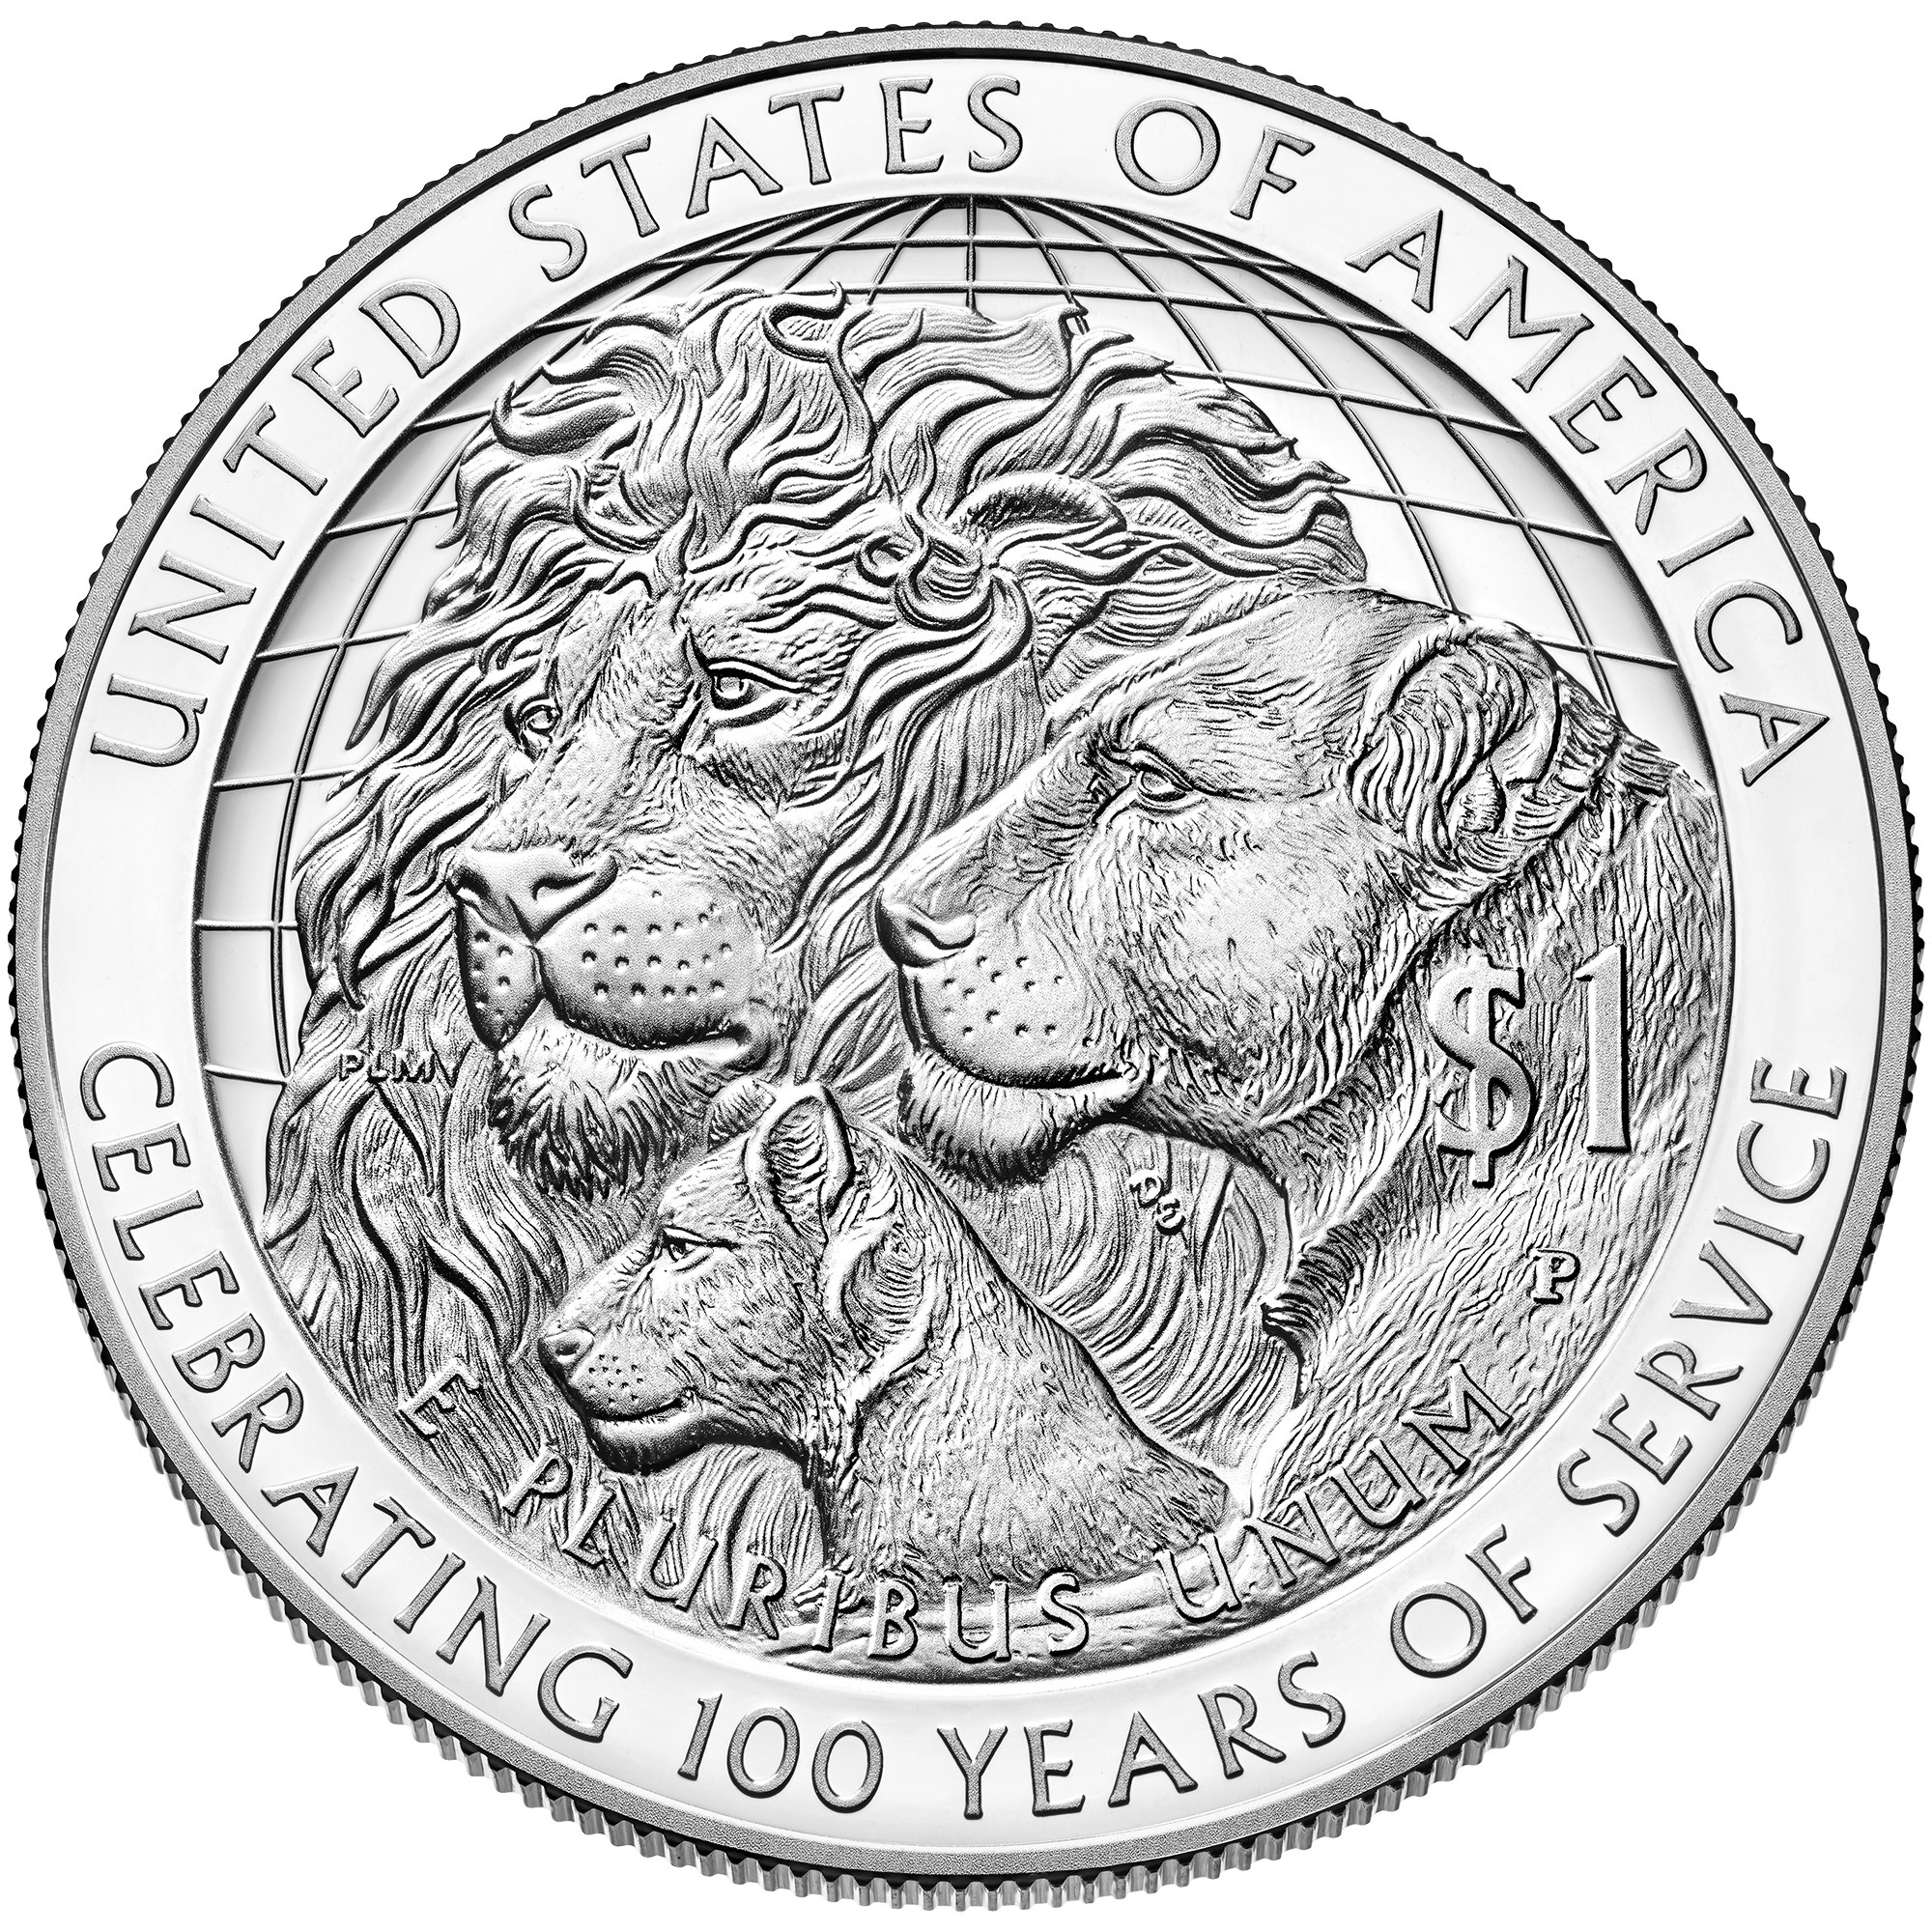 2000x2000 2017 Lions Clubs Silver Dollar Coin Now Available World